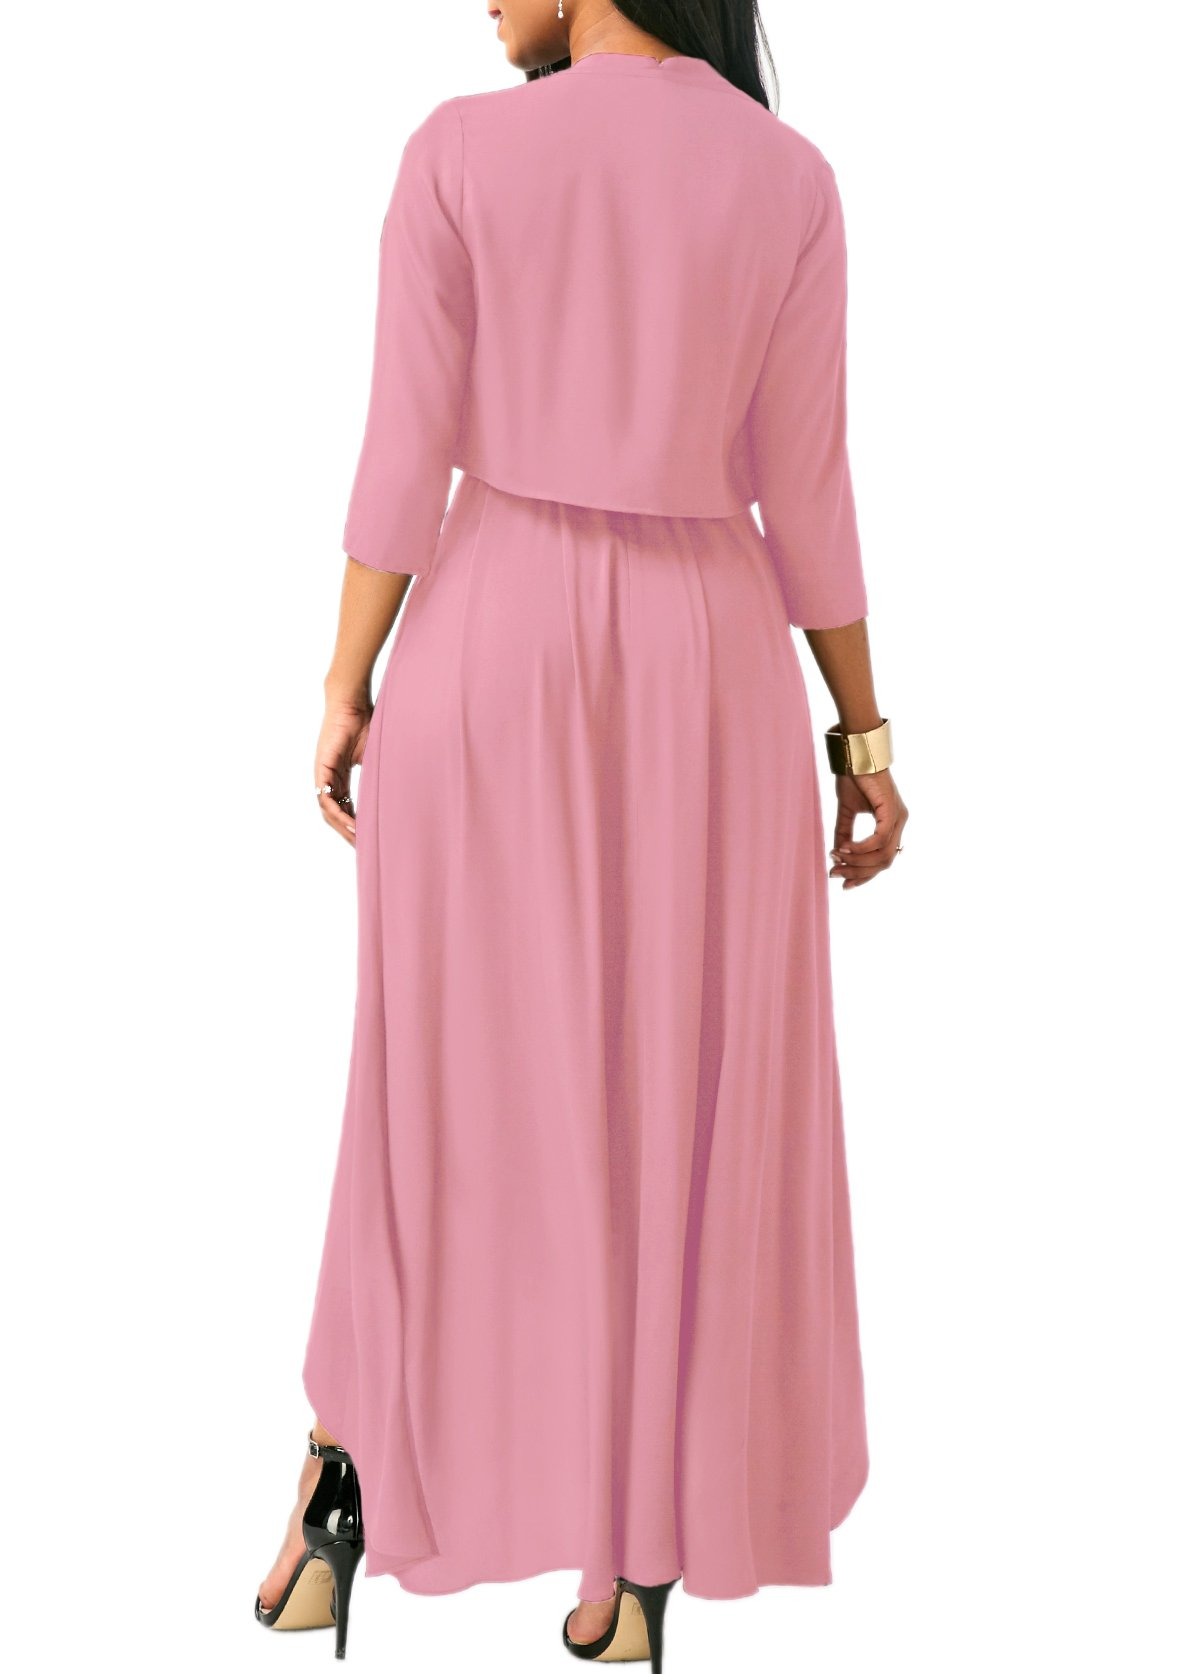 Lalagen Womens Plus Size Sleeveless Belted Party Maxi Dress with Cardigan by Lalagen (Image #4)